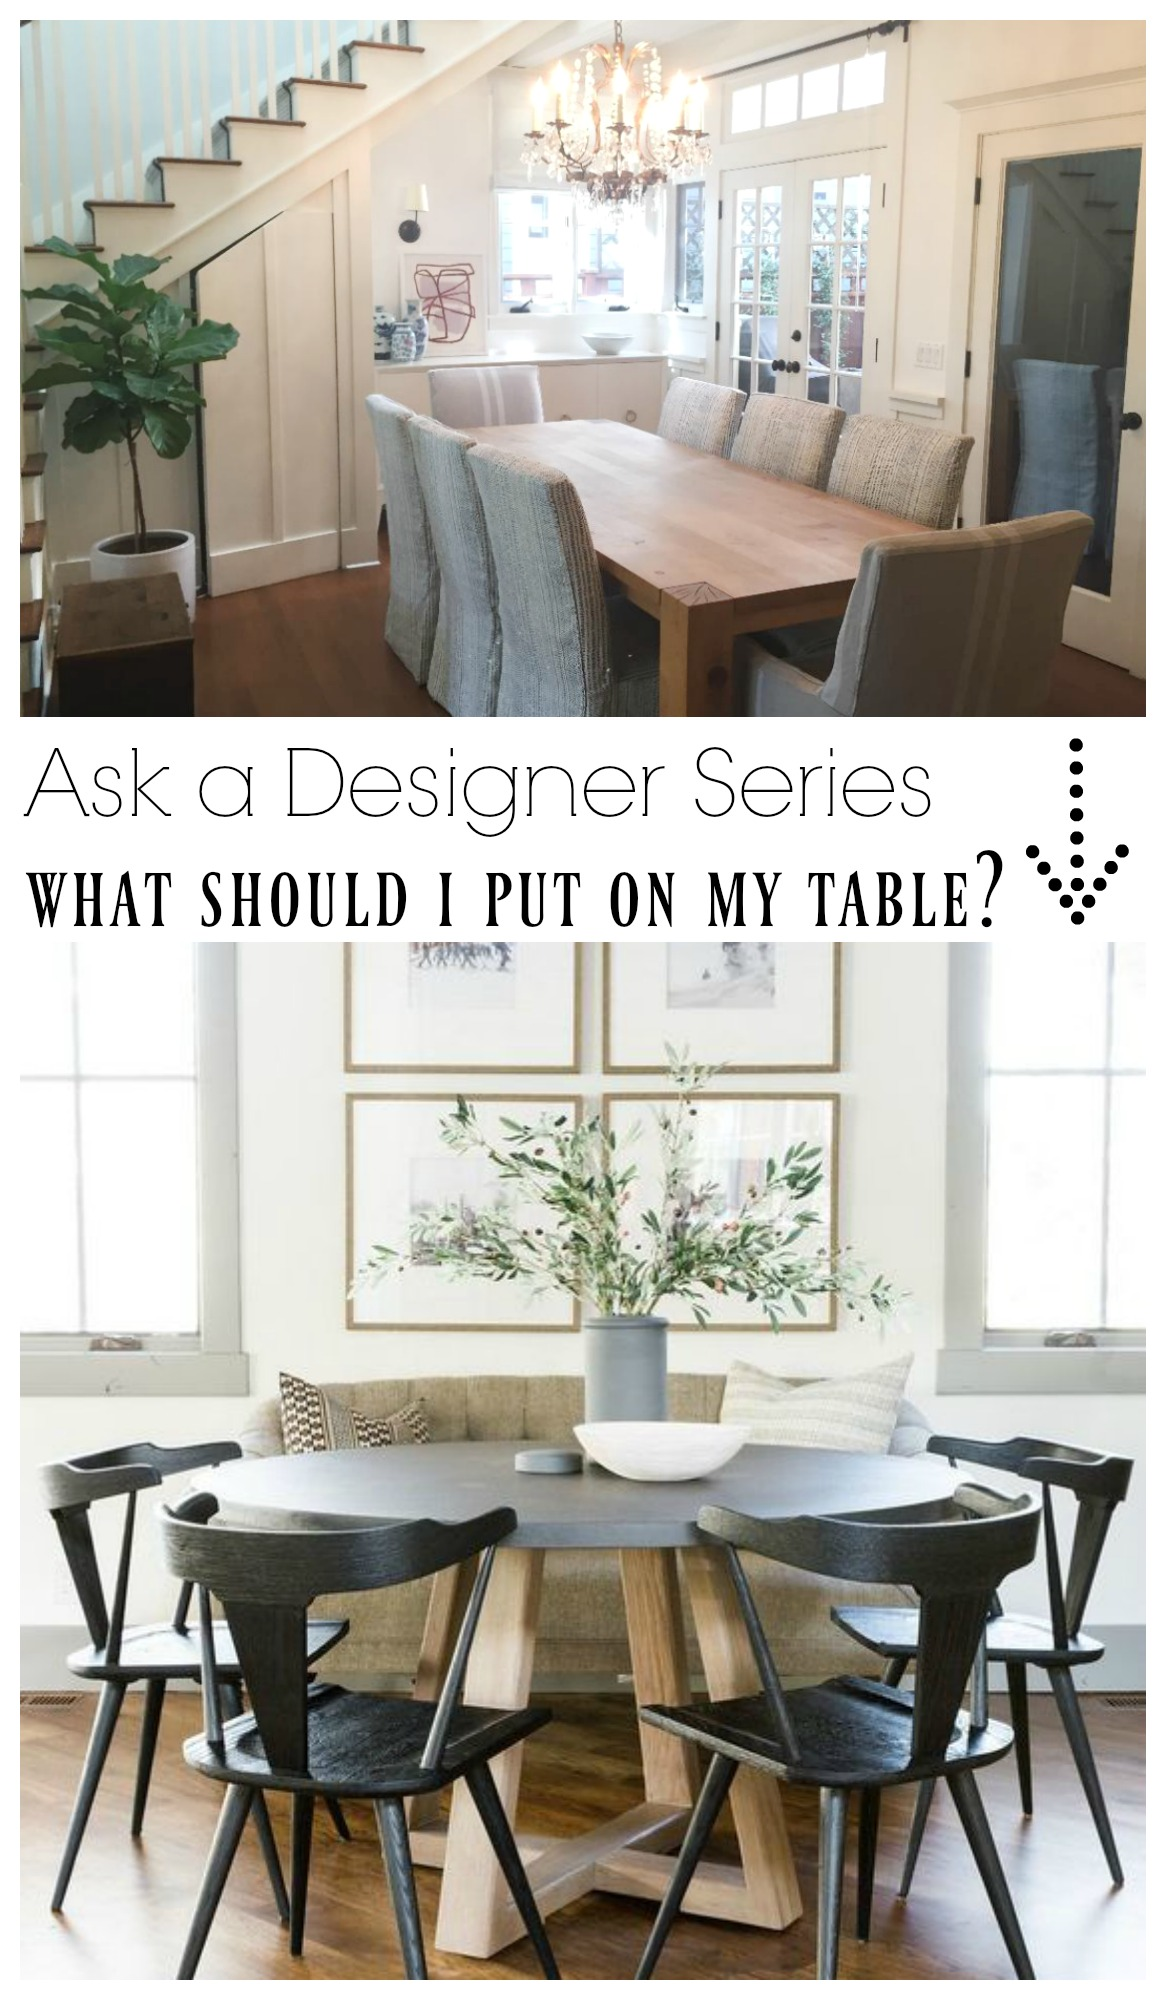 Ask a Designer Series- What should I put on my kithcen table?